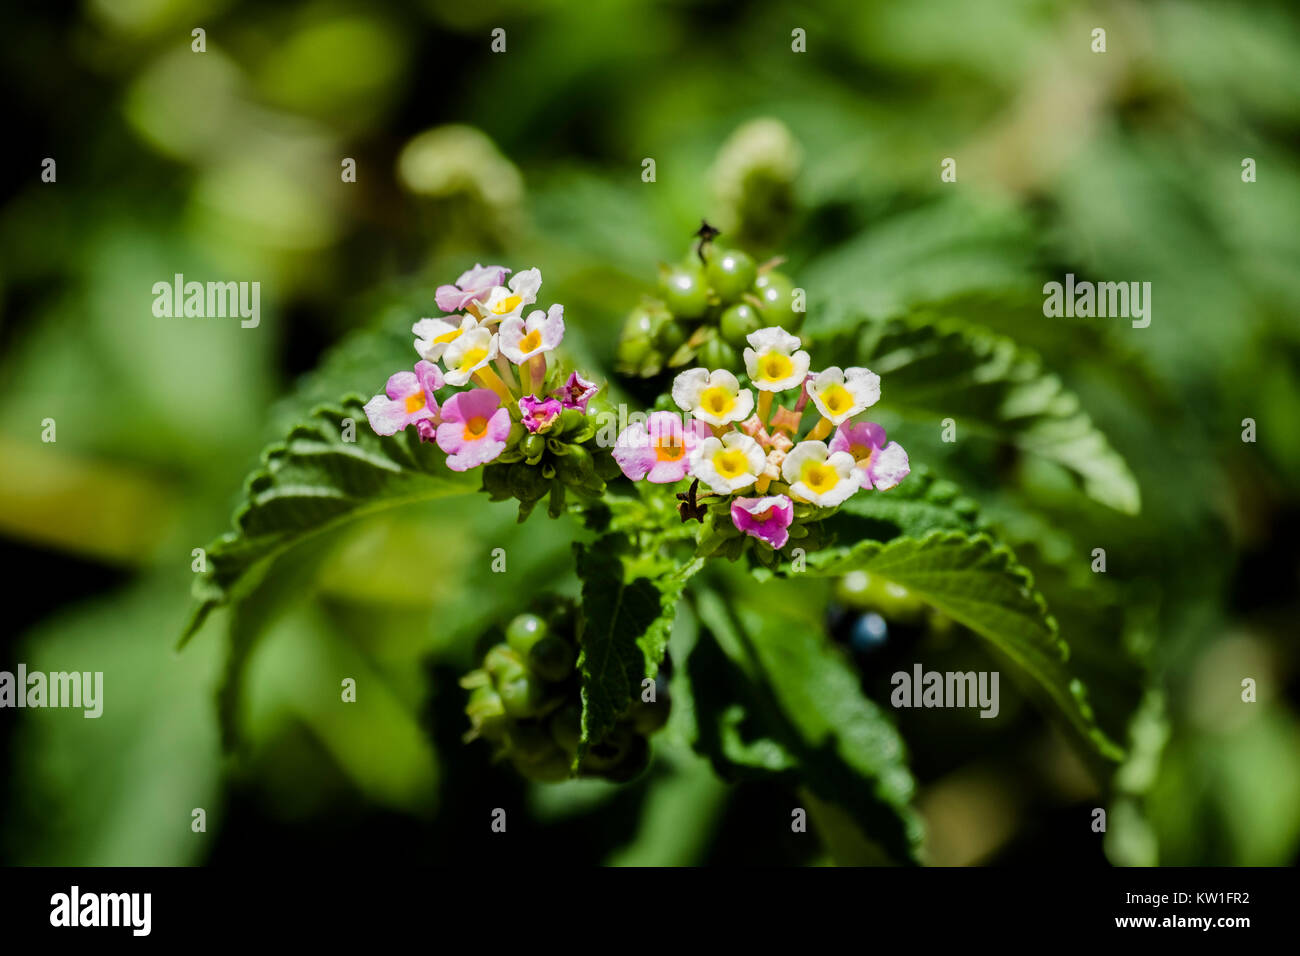 White and purple flowers tickberry (Lantana camara) Stock Photo